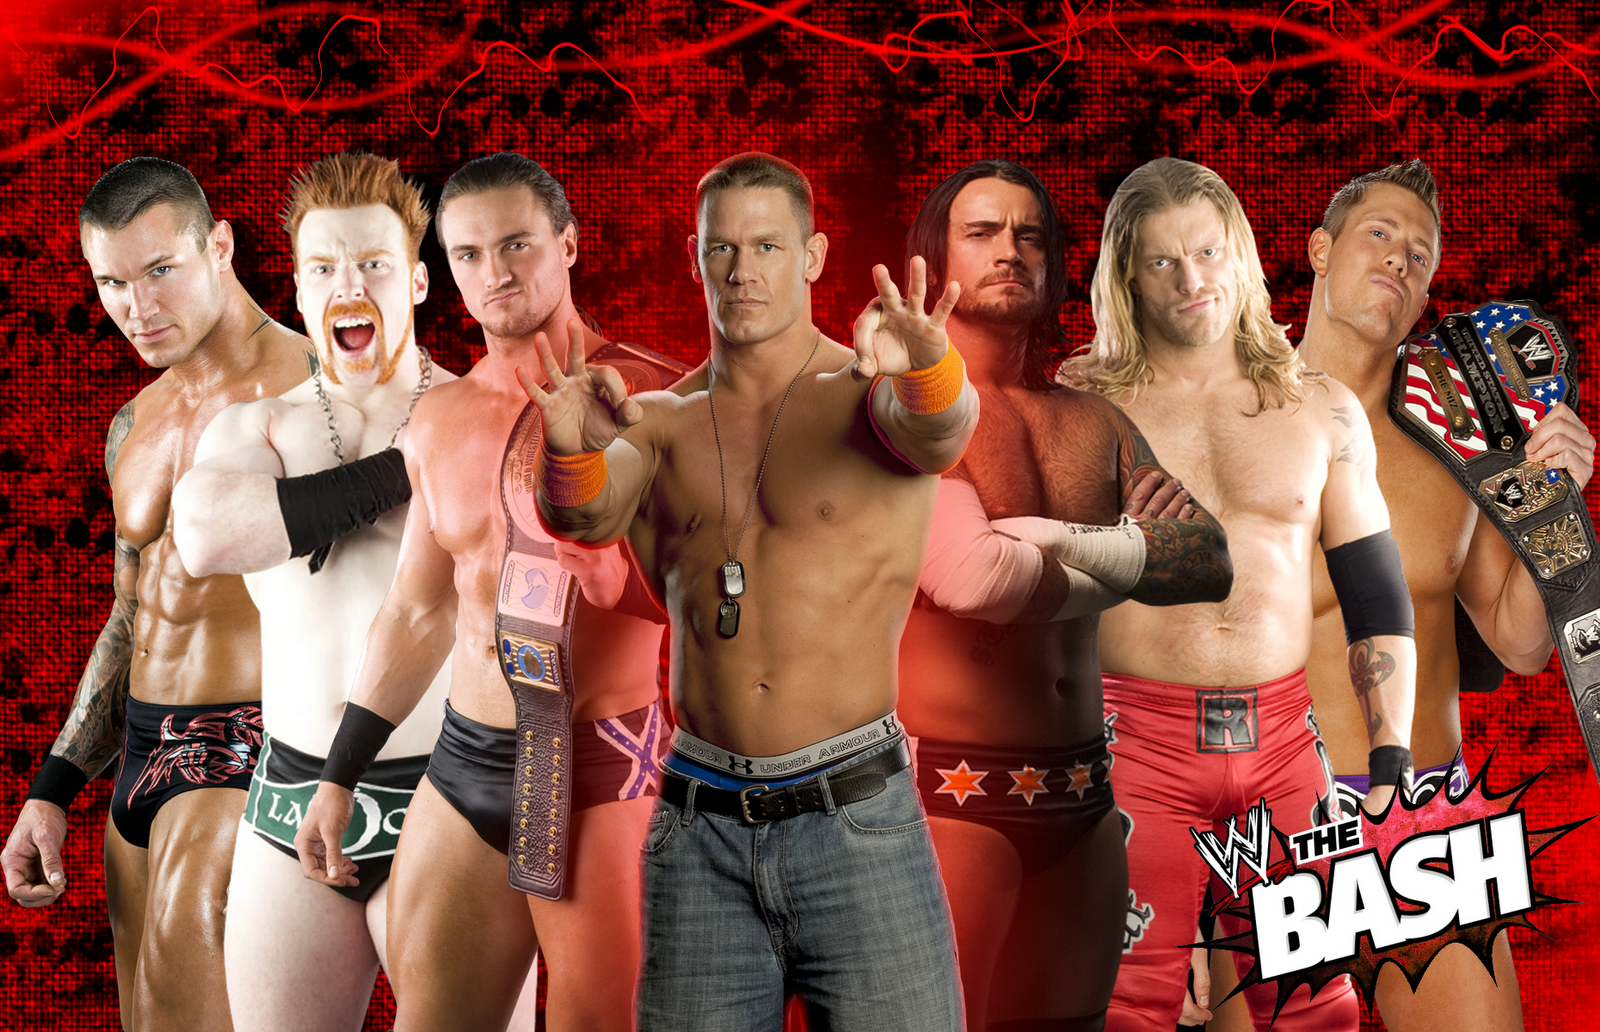 http://2.bp.blogspot.com/-axNBXiYb9EU/TaWlQPfWQtI/AAAAAAAACC8/TNli59E13cc/s1600/WWE_The_Bash_2010_Wallpaper_HD_by_DecadeofSmackdownV2.png